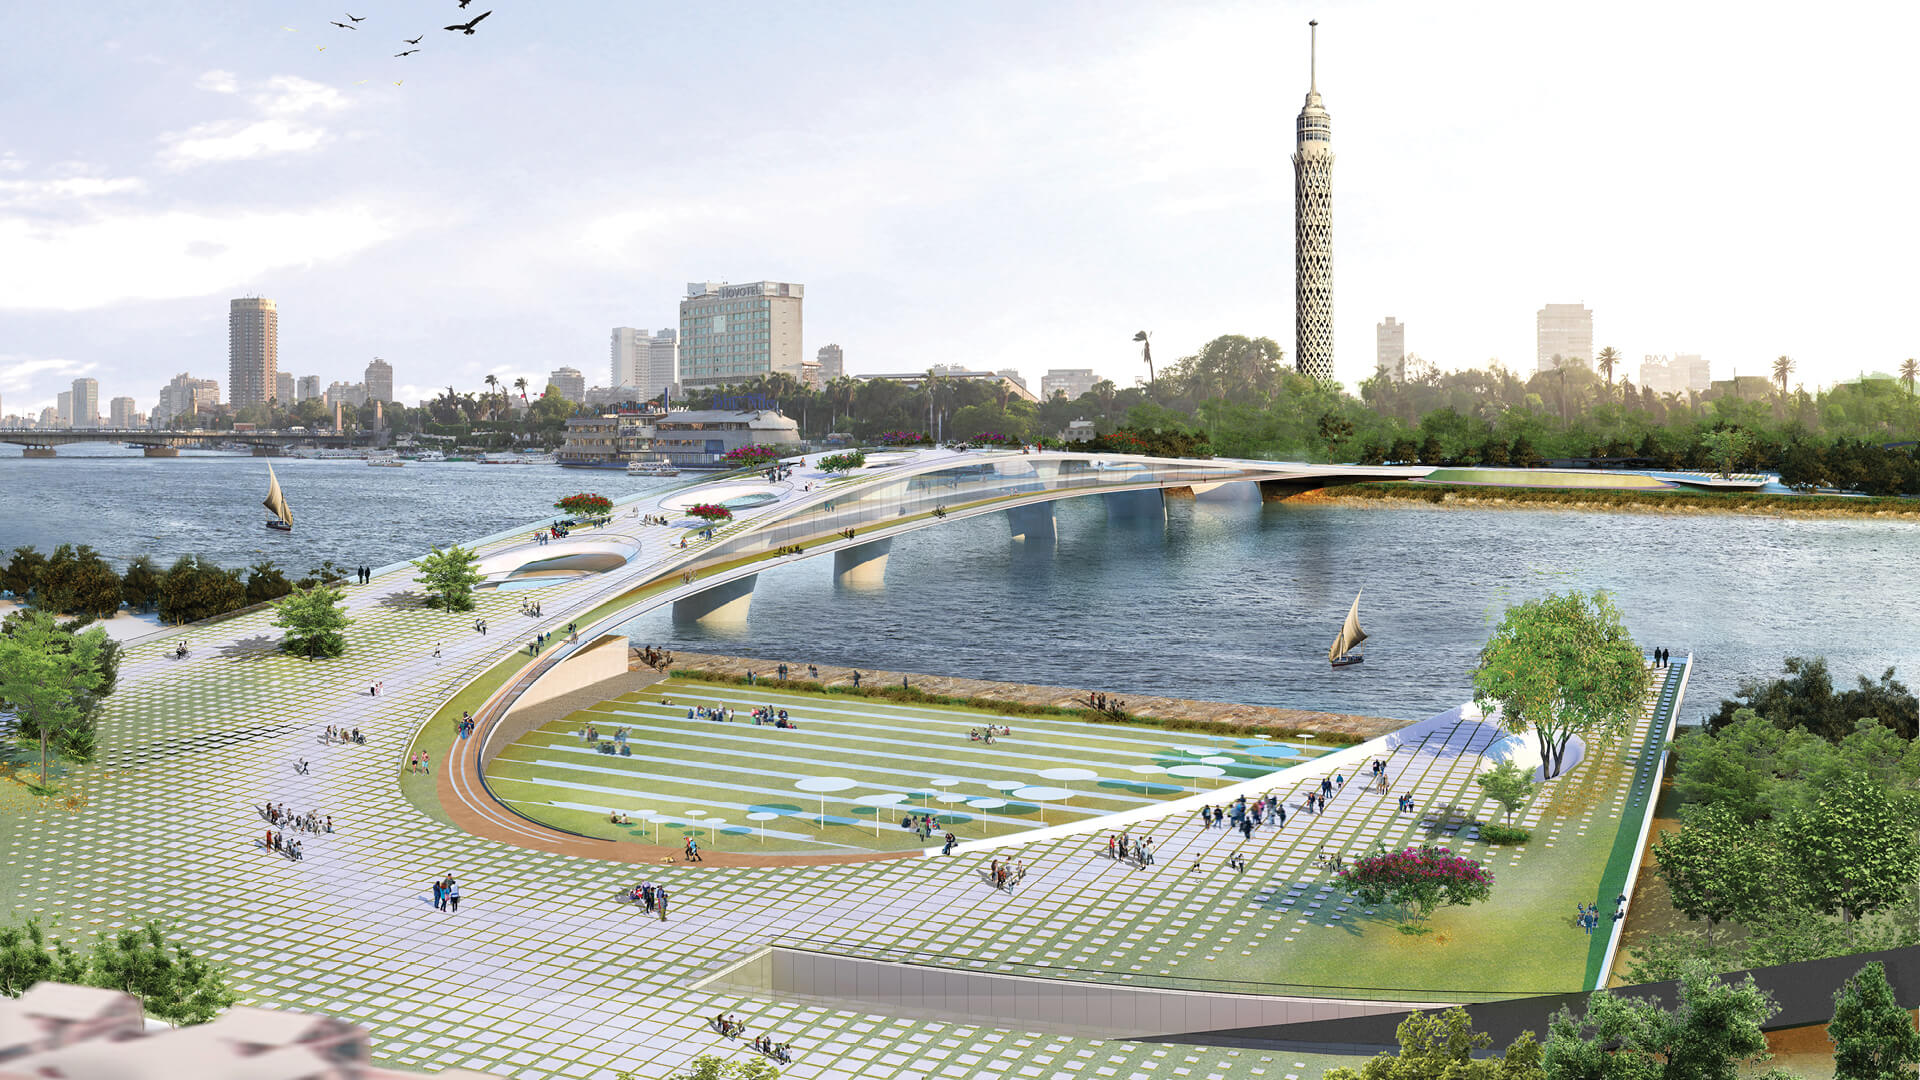 'Living Pedestrian Bridge Over the Nile' designed by a team of five architects from Cairo | Rifat Chadirji Prize 2020 declared by Tamayouz Excellence Award | STIRworld